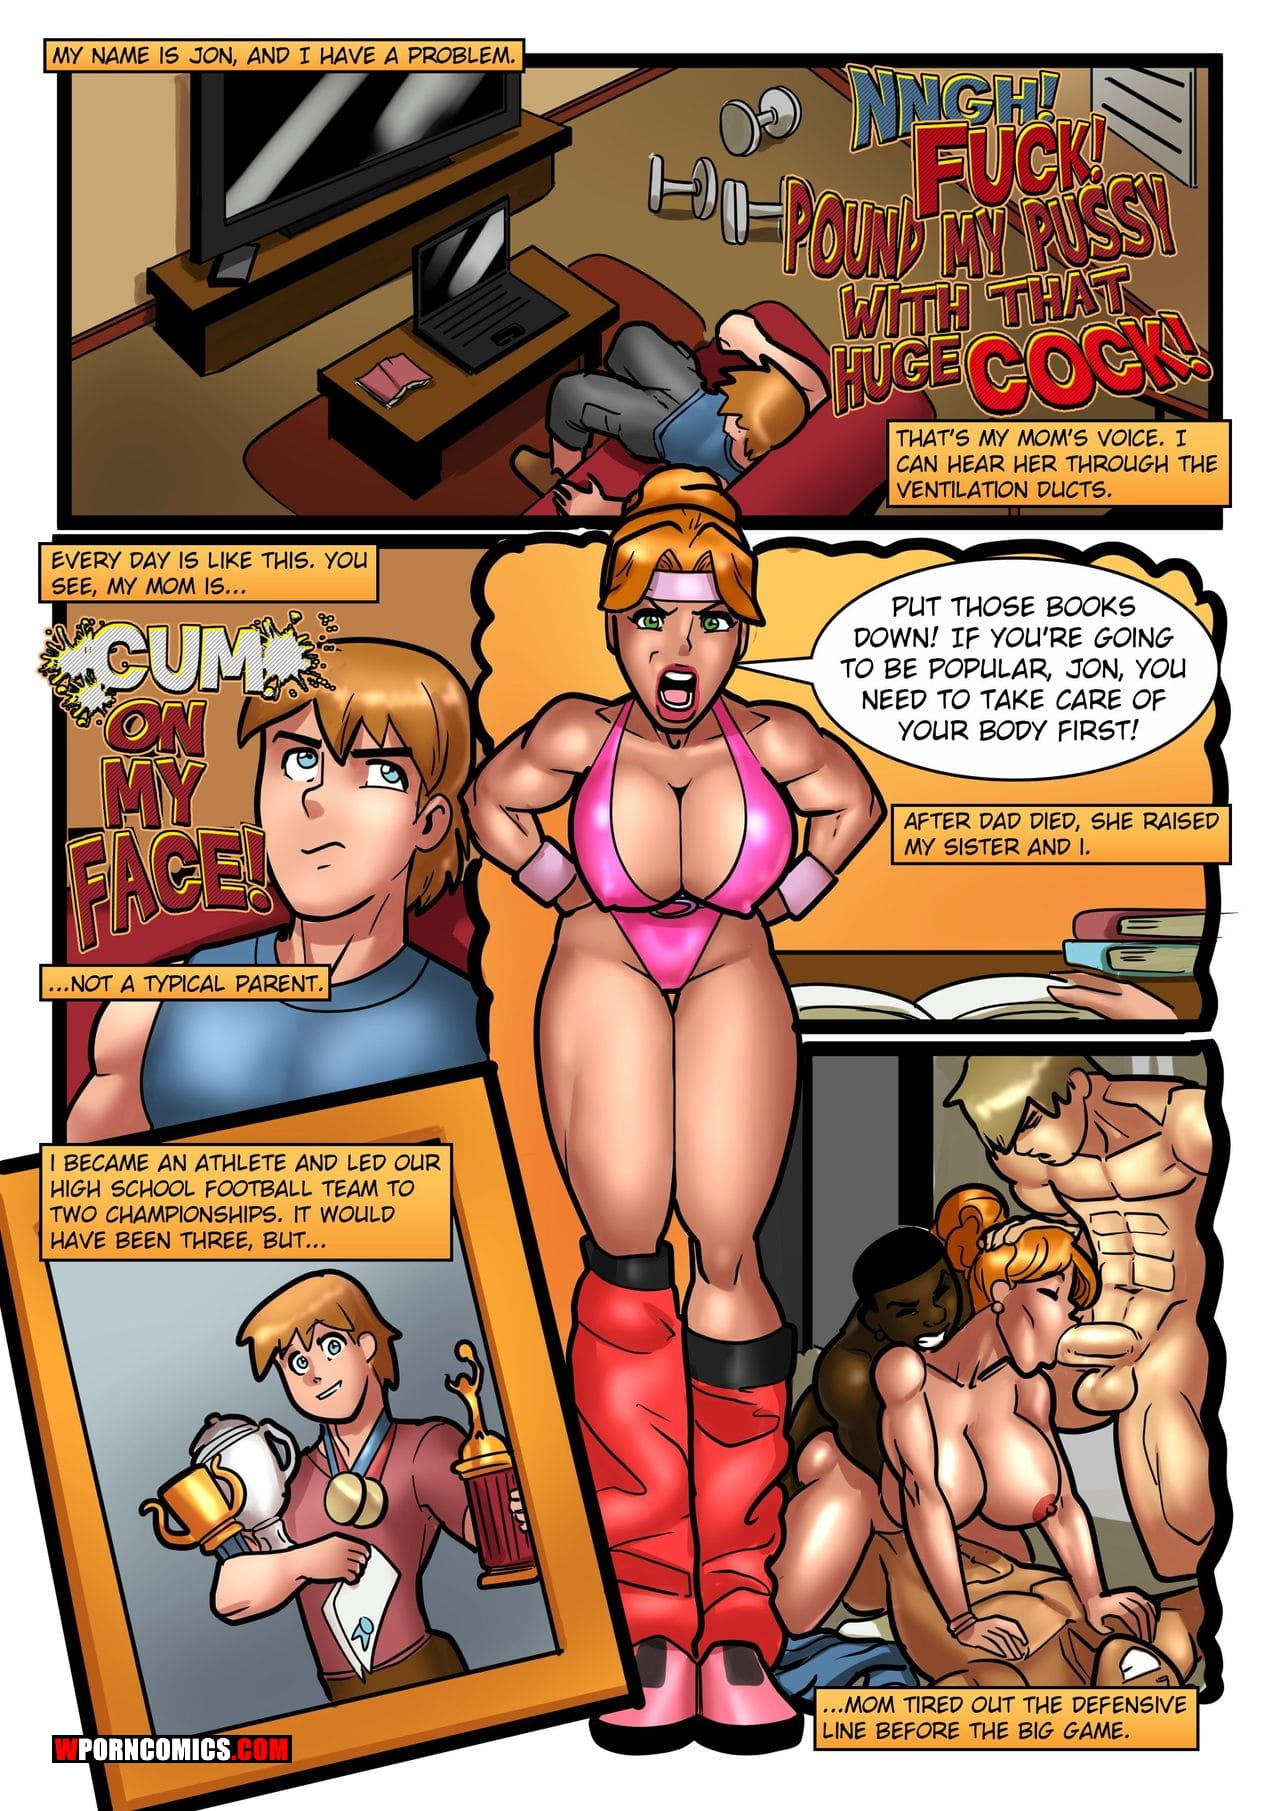 porn-comic-my-mom-and-sister-are-size-queen-sluts-part-1-2020-03-04/porn-comic-my-mom-and-sister-are-size-queen-sluts-part-1-2020-03-04-8954.jpg